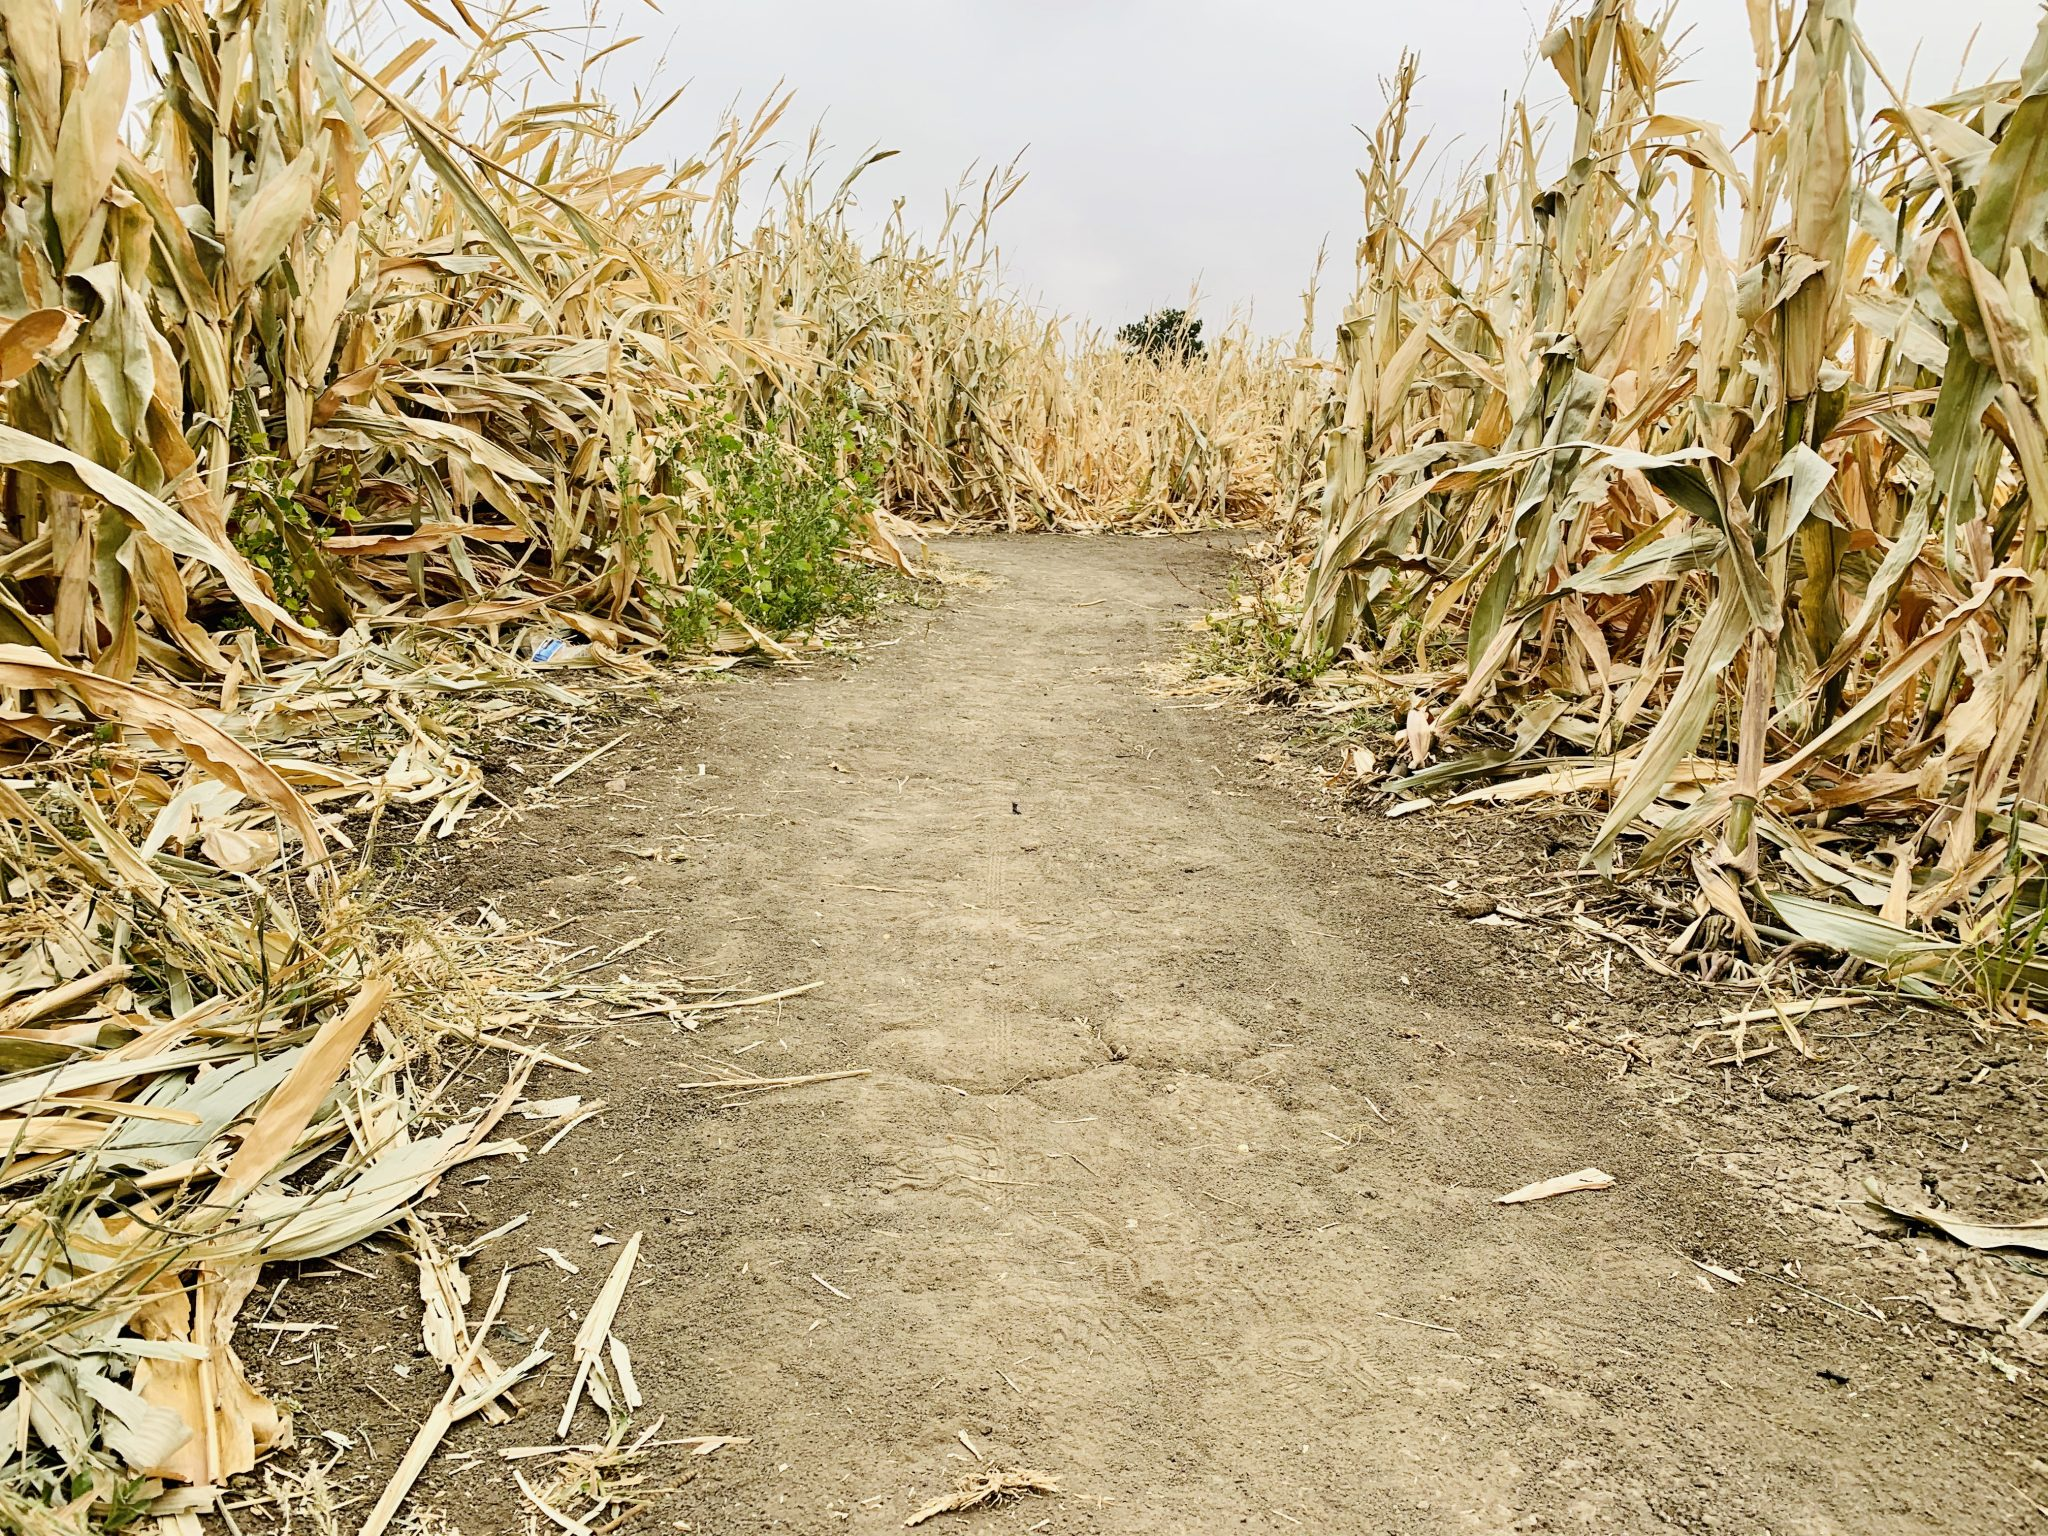 corn maze route with hard dirt path